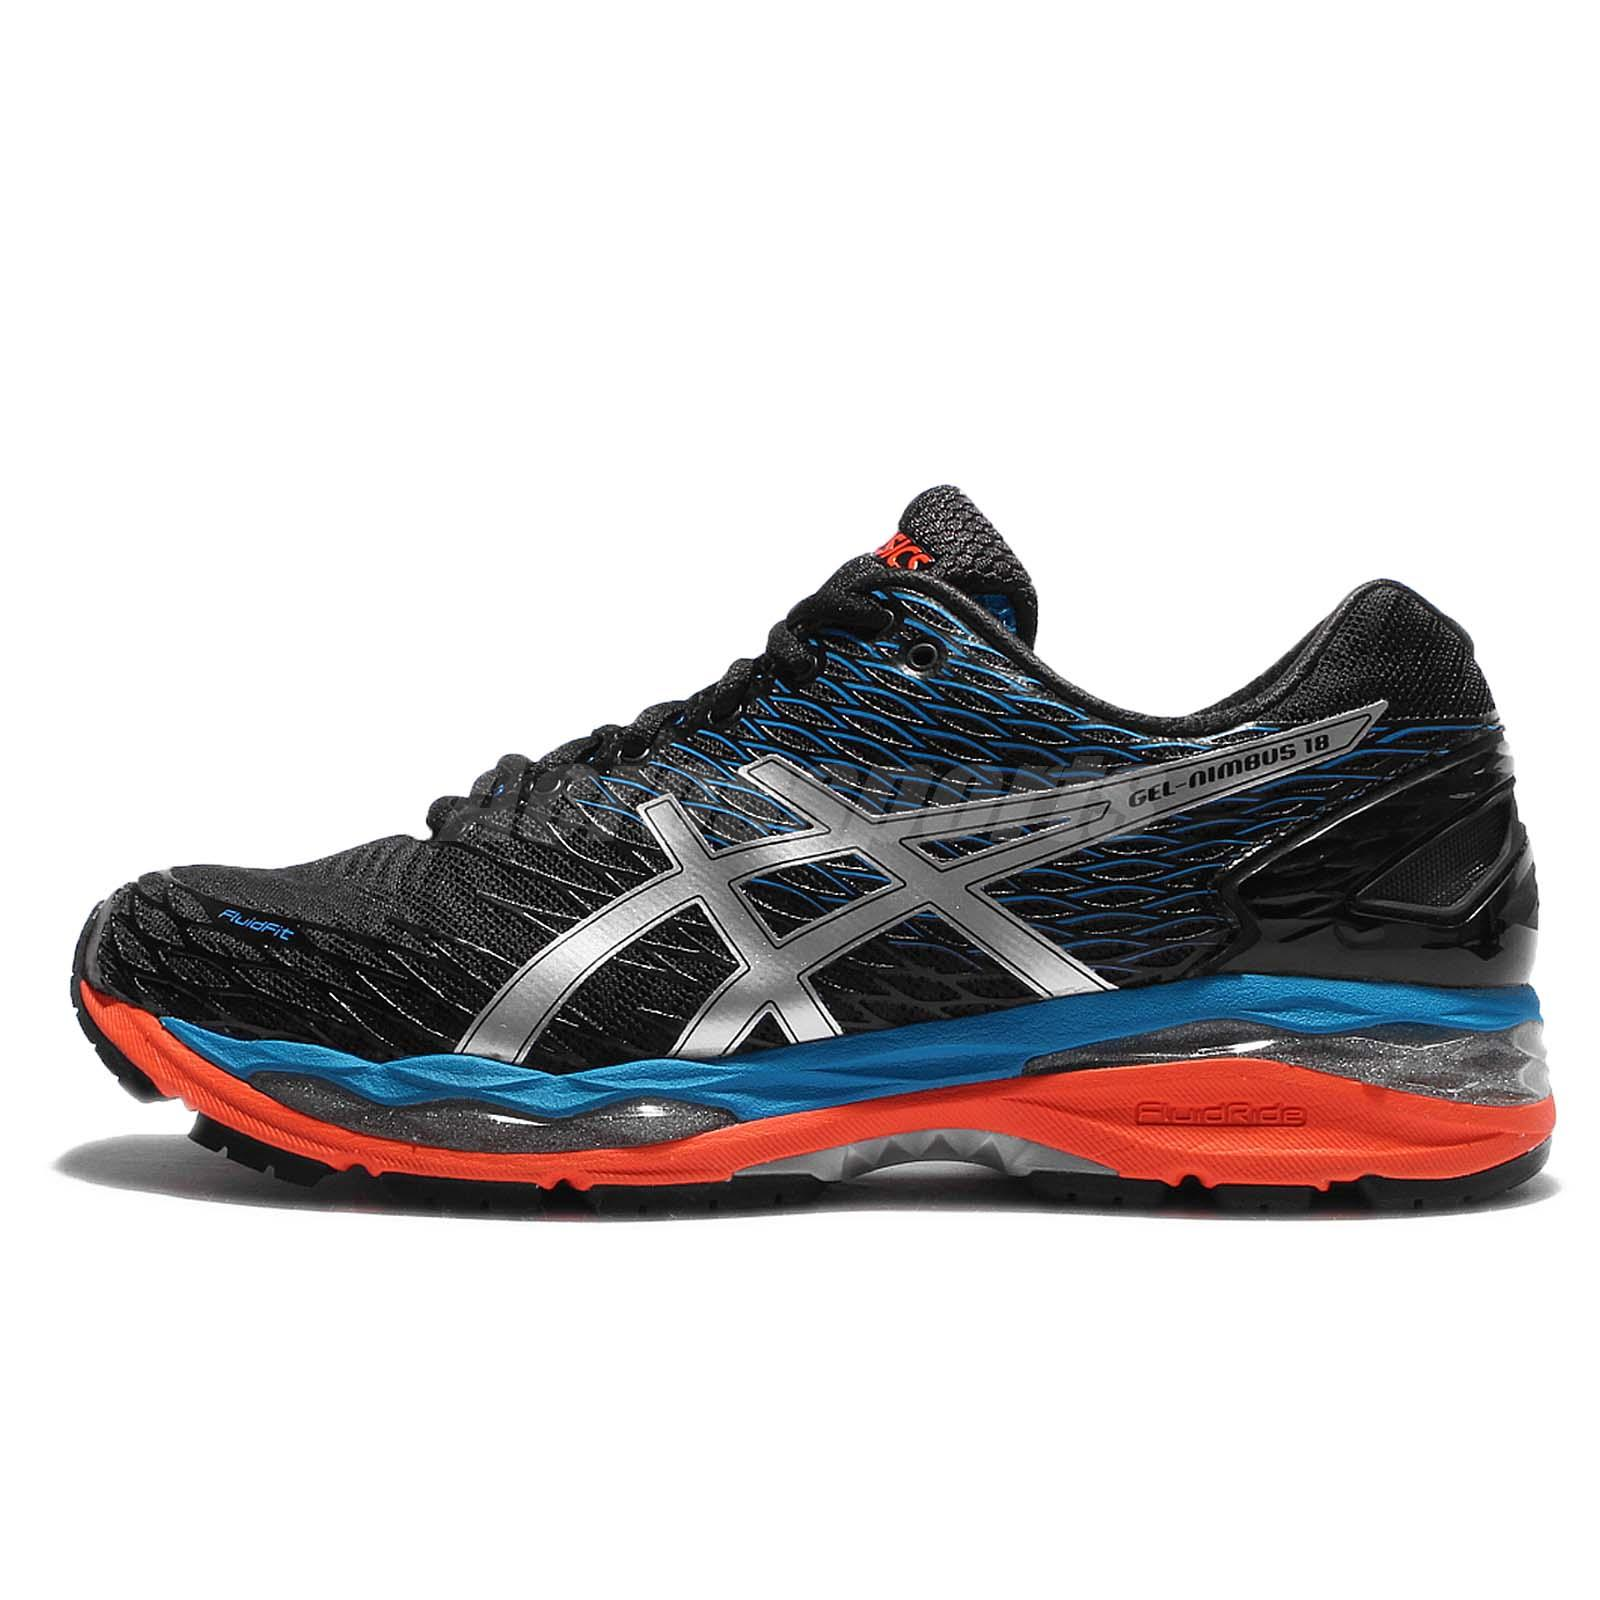 asics gel nimbus 18 black silver blue mens running shoes sneakers t600n 9993 ebay. Black Bedroom Furniture Sets. Home Design Ideas